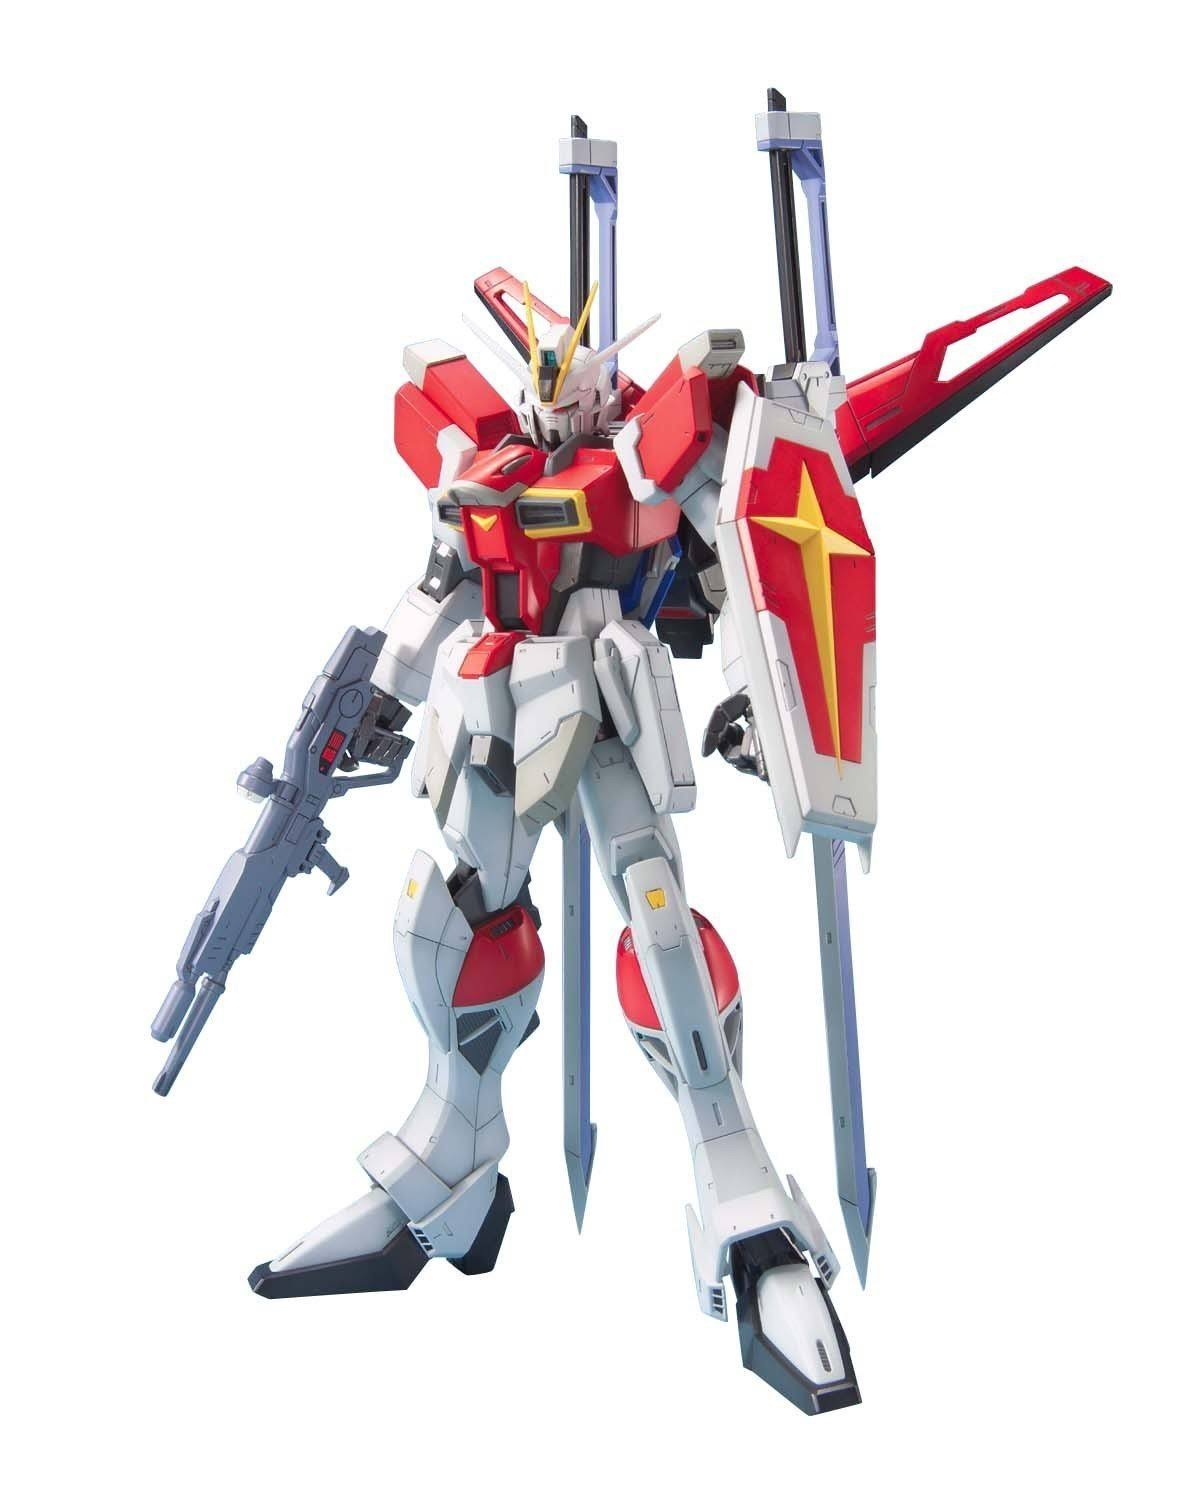 Bandai MG 584946 Gundam Sword Impulse Model - 1/100 Scale